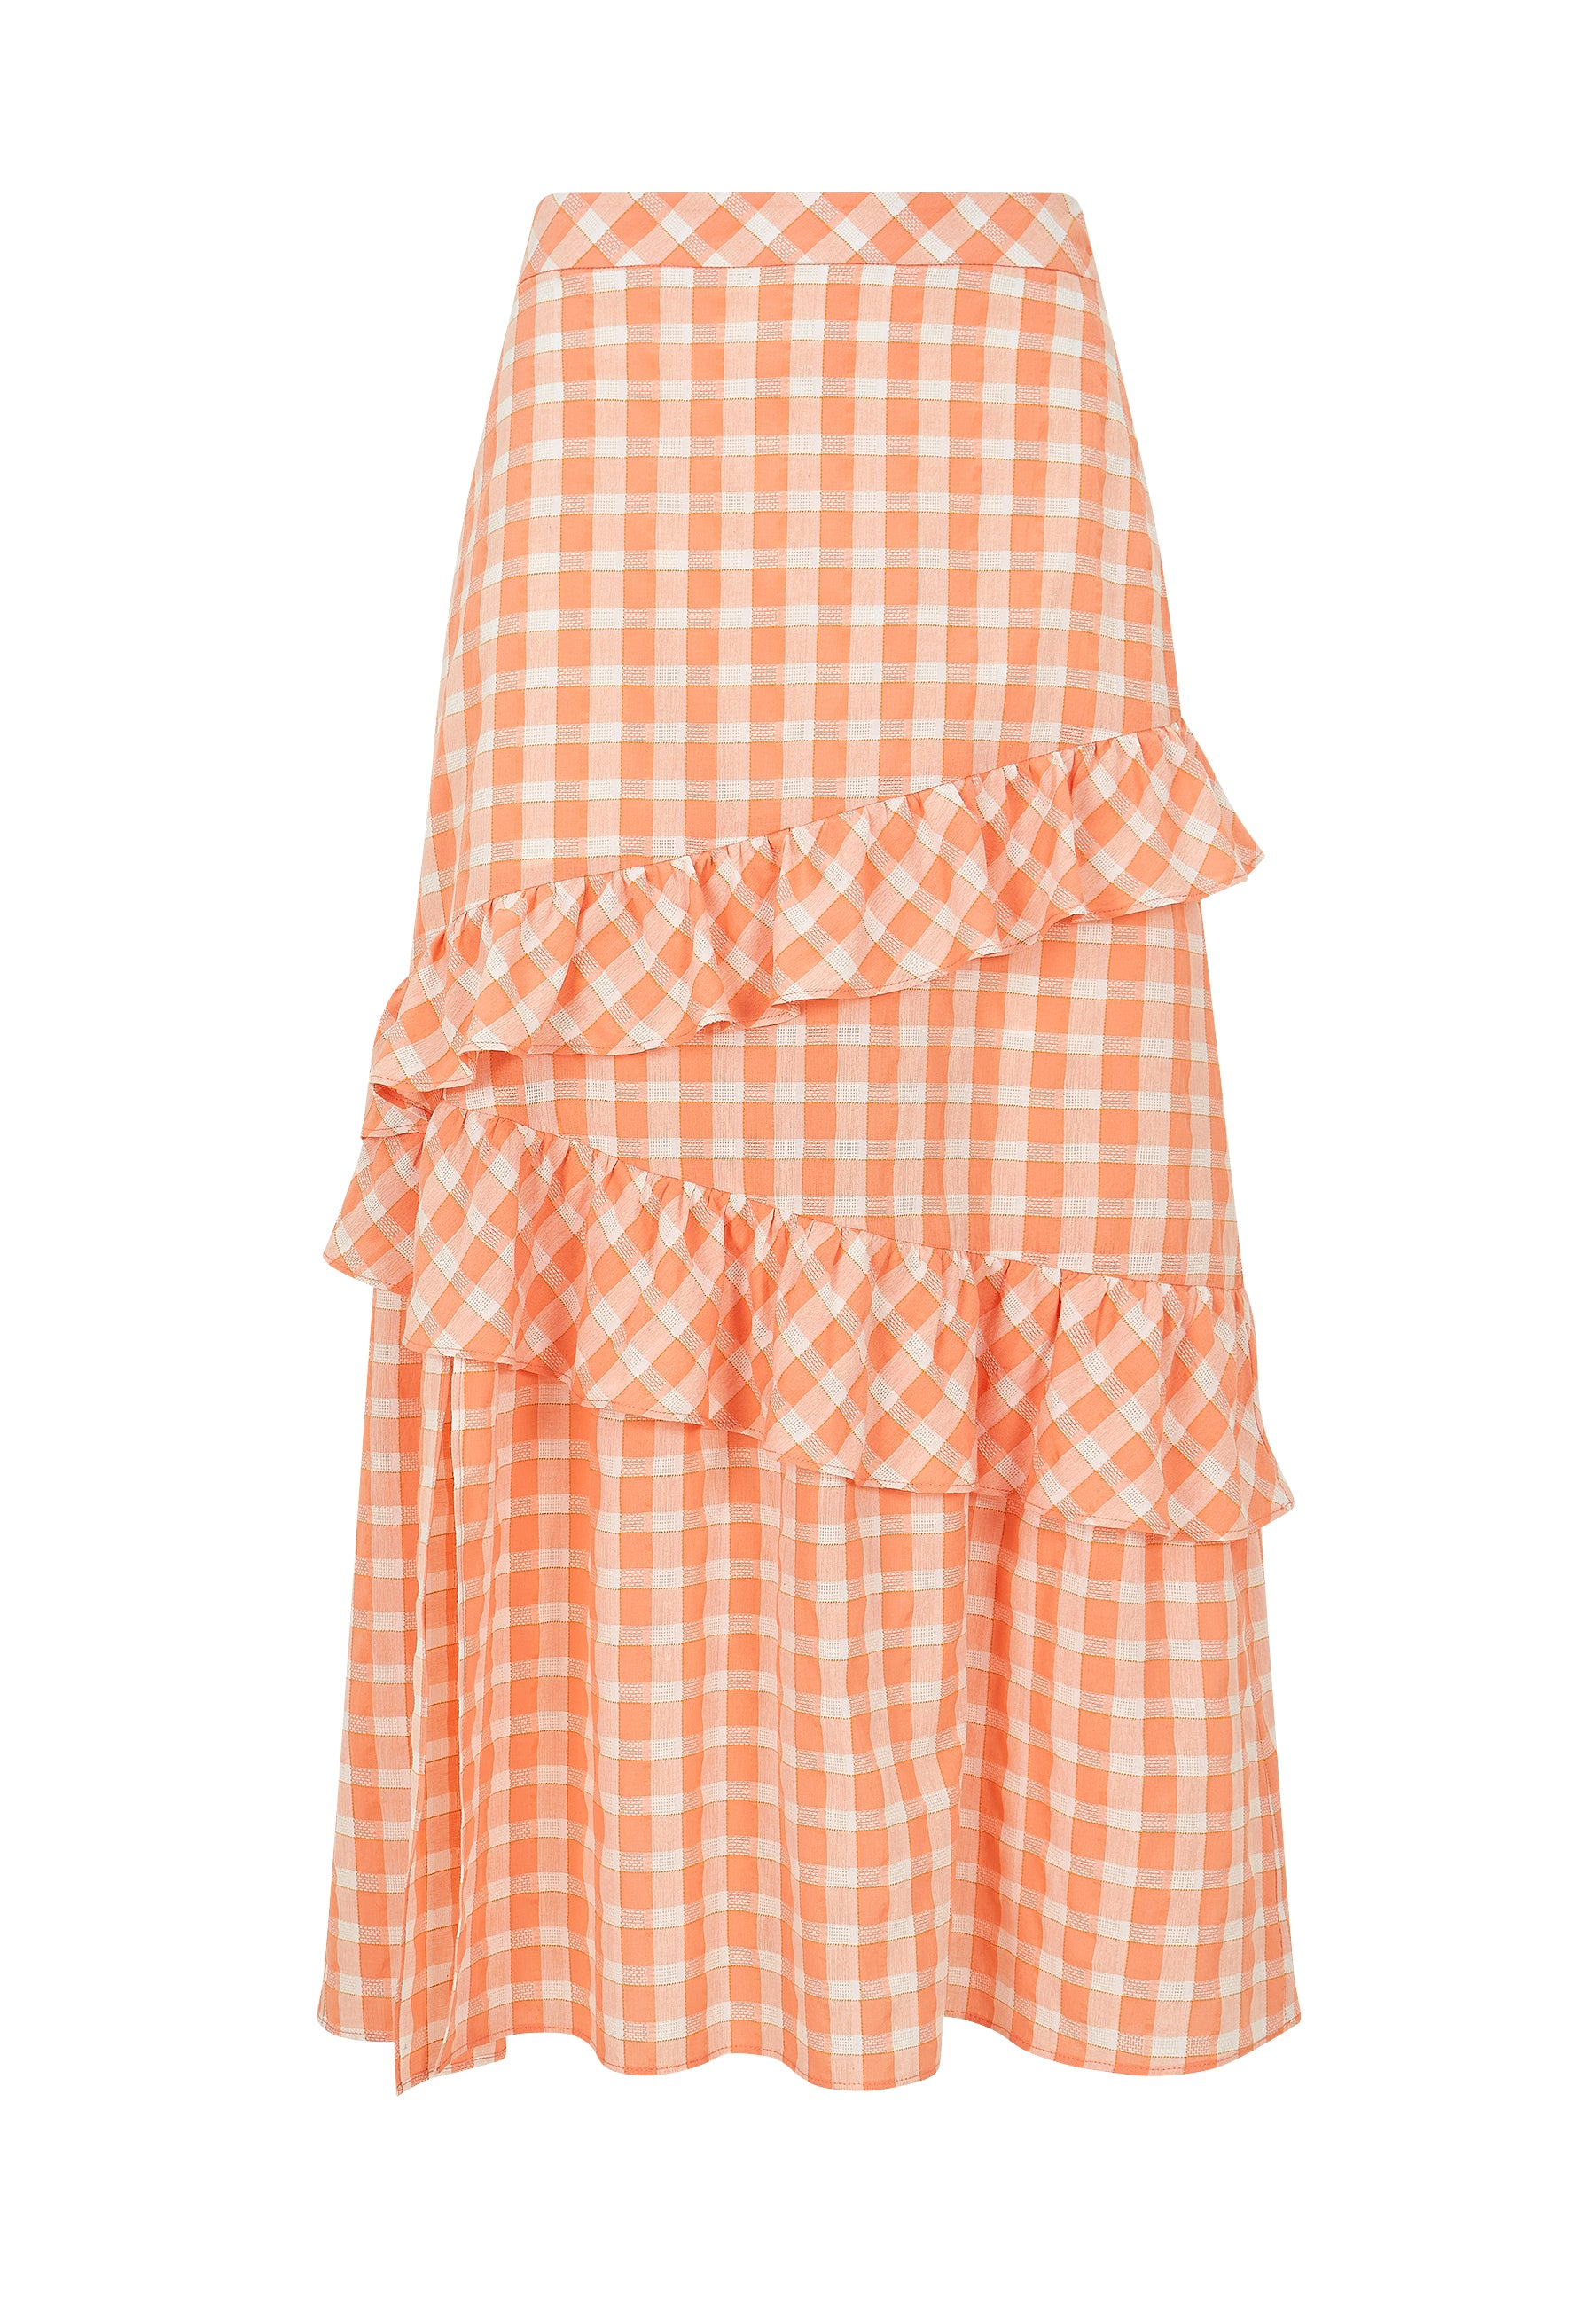 Load image into Gallery viewer, Apricot Gingham Ruffle Midi Skirt